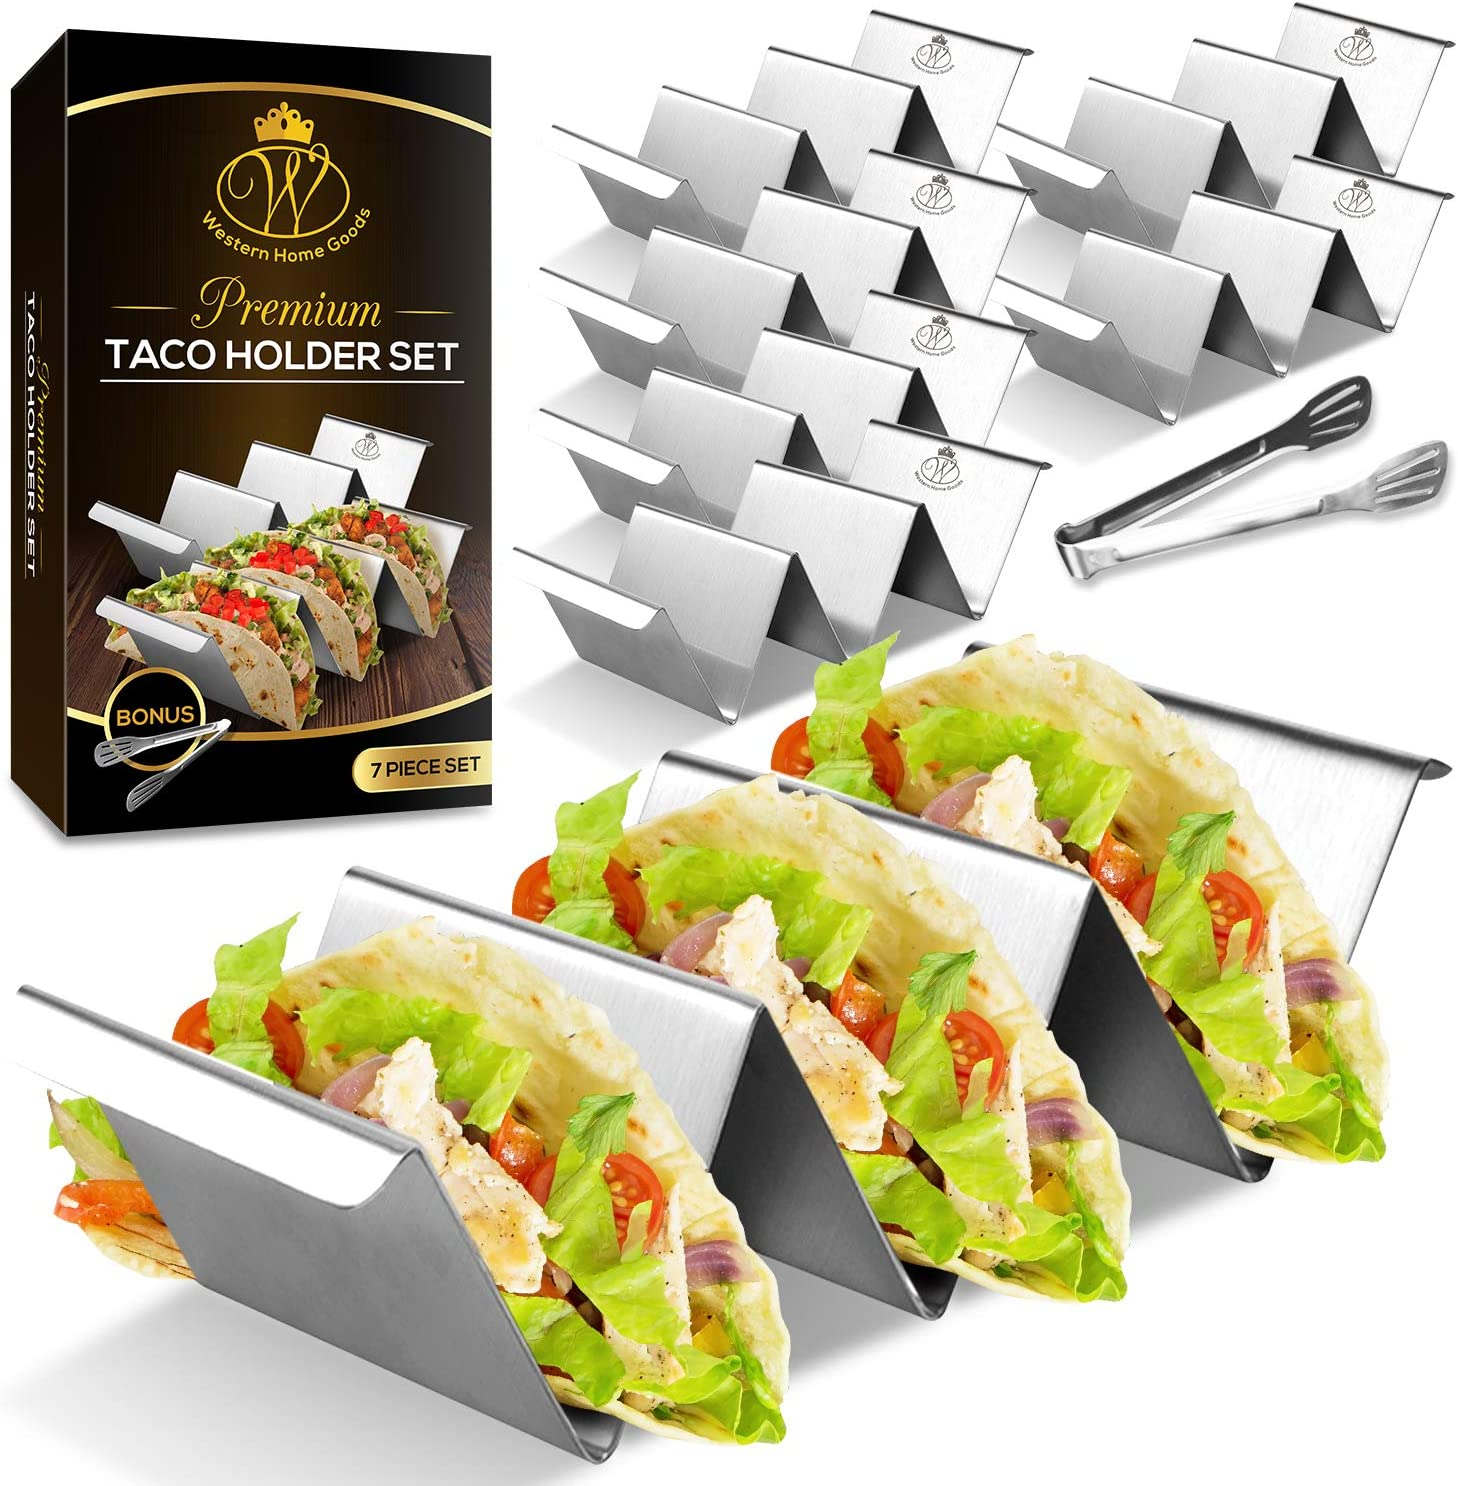 Set of 6 Taco Holder Stand – Dishwasher & Oven Safe Taco Stand with Bonus Serving Tongs - Easy to Serve Taco Rack - Taco Tray with Handles by Western Home Goods